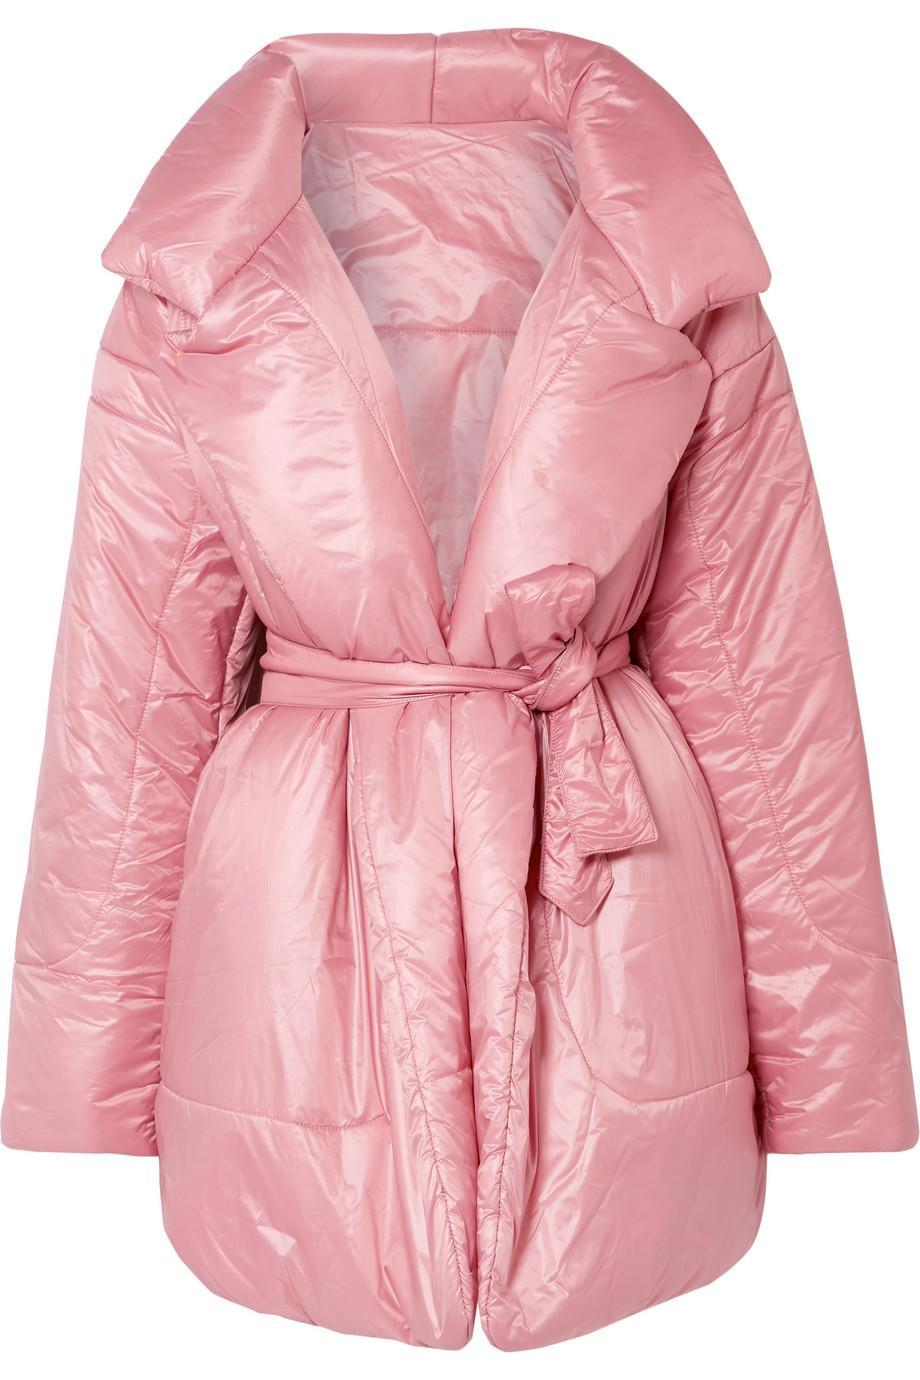 """<br><br><strong>Norma Kamali</strong> Belted Quilted Shell Coat, $, available at <a href=""""https://www.net-a-porter.com/gb/en/product/1082623/Norma_Kamali/belted-quilted-shell-coat"""" rel=""""nofollow noopener"""" target=""""_blank"""" data-ylk=""""slk:Net-A-Porter"""" class=""""link rapid-noclick-resp"""">Net-A-Porter</a>"""